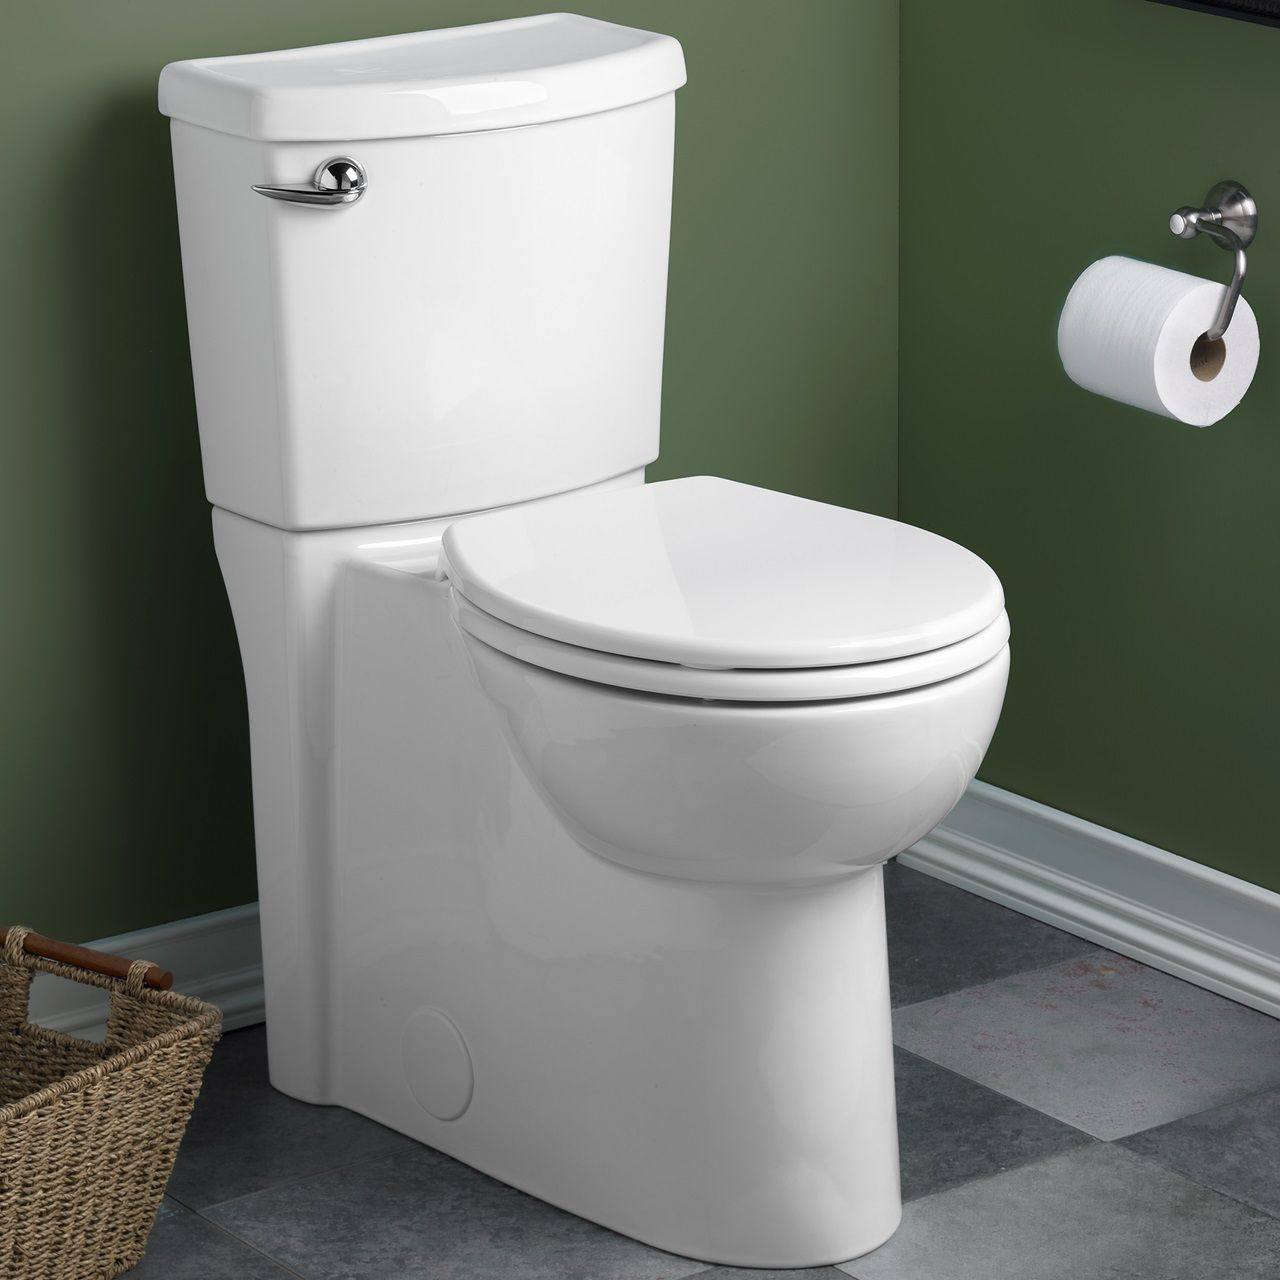 Toilets Cadet 3 Flowise Right Height Round Front Concealed